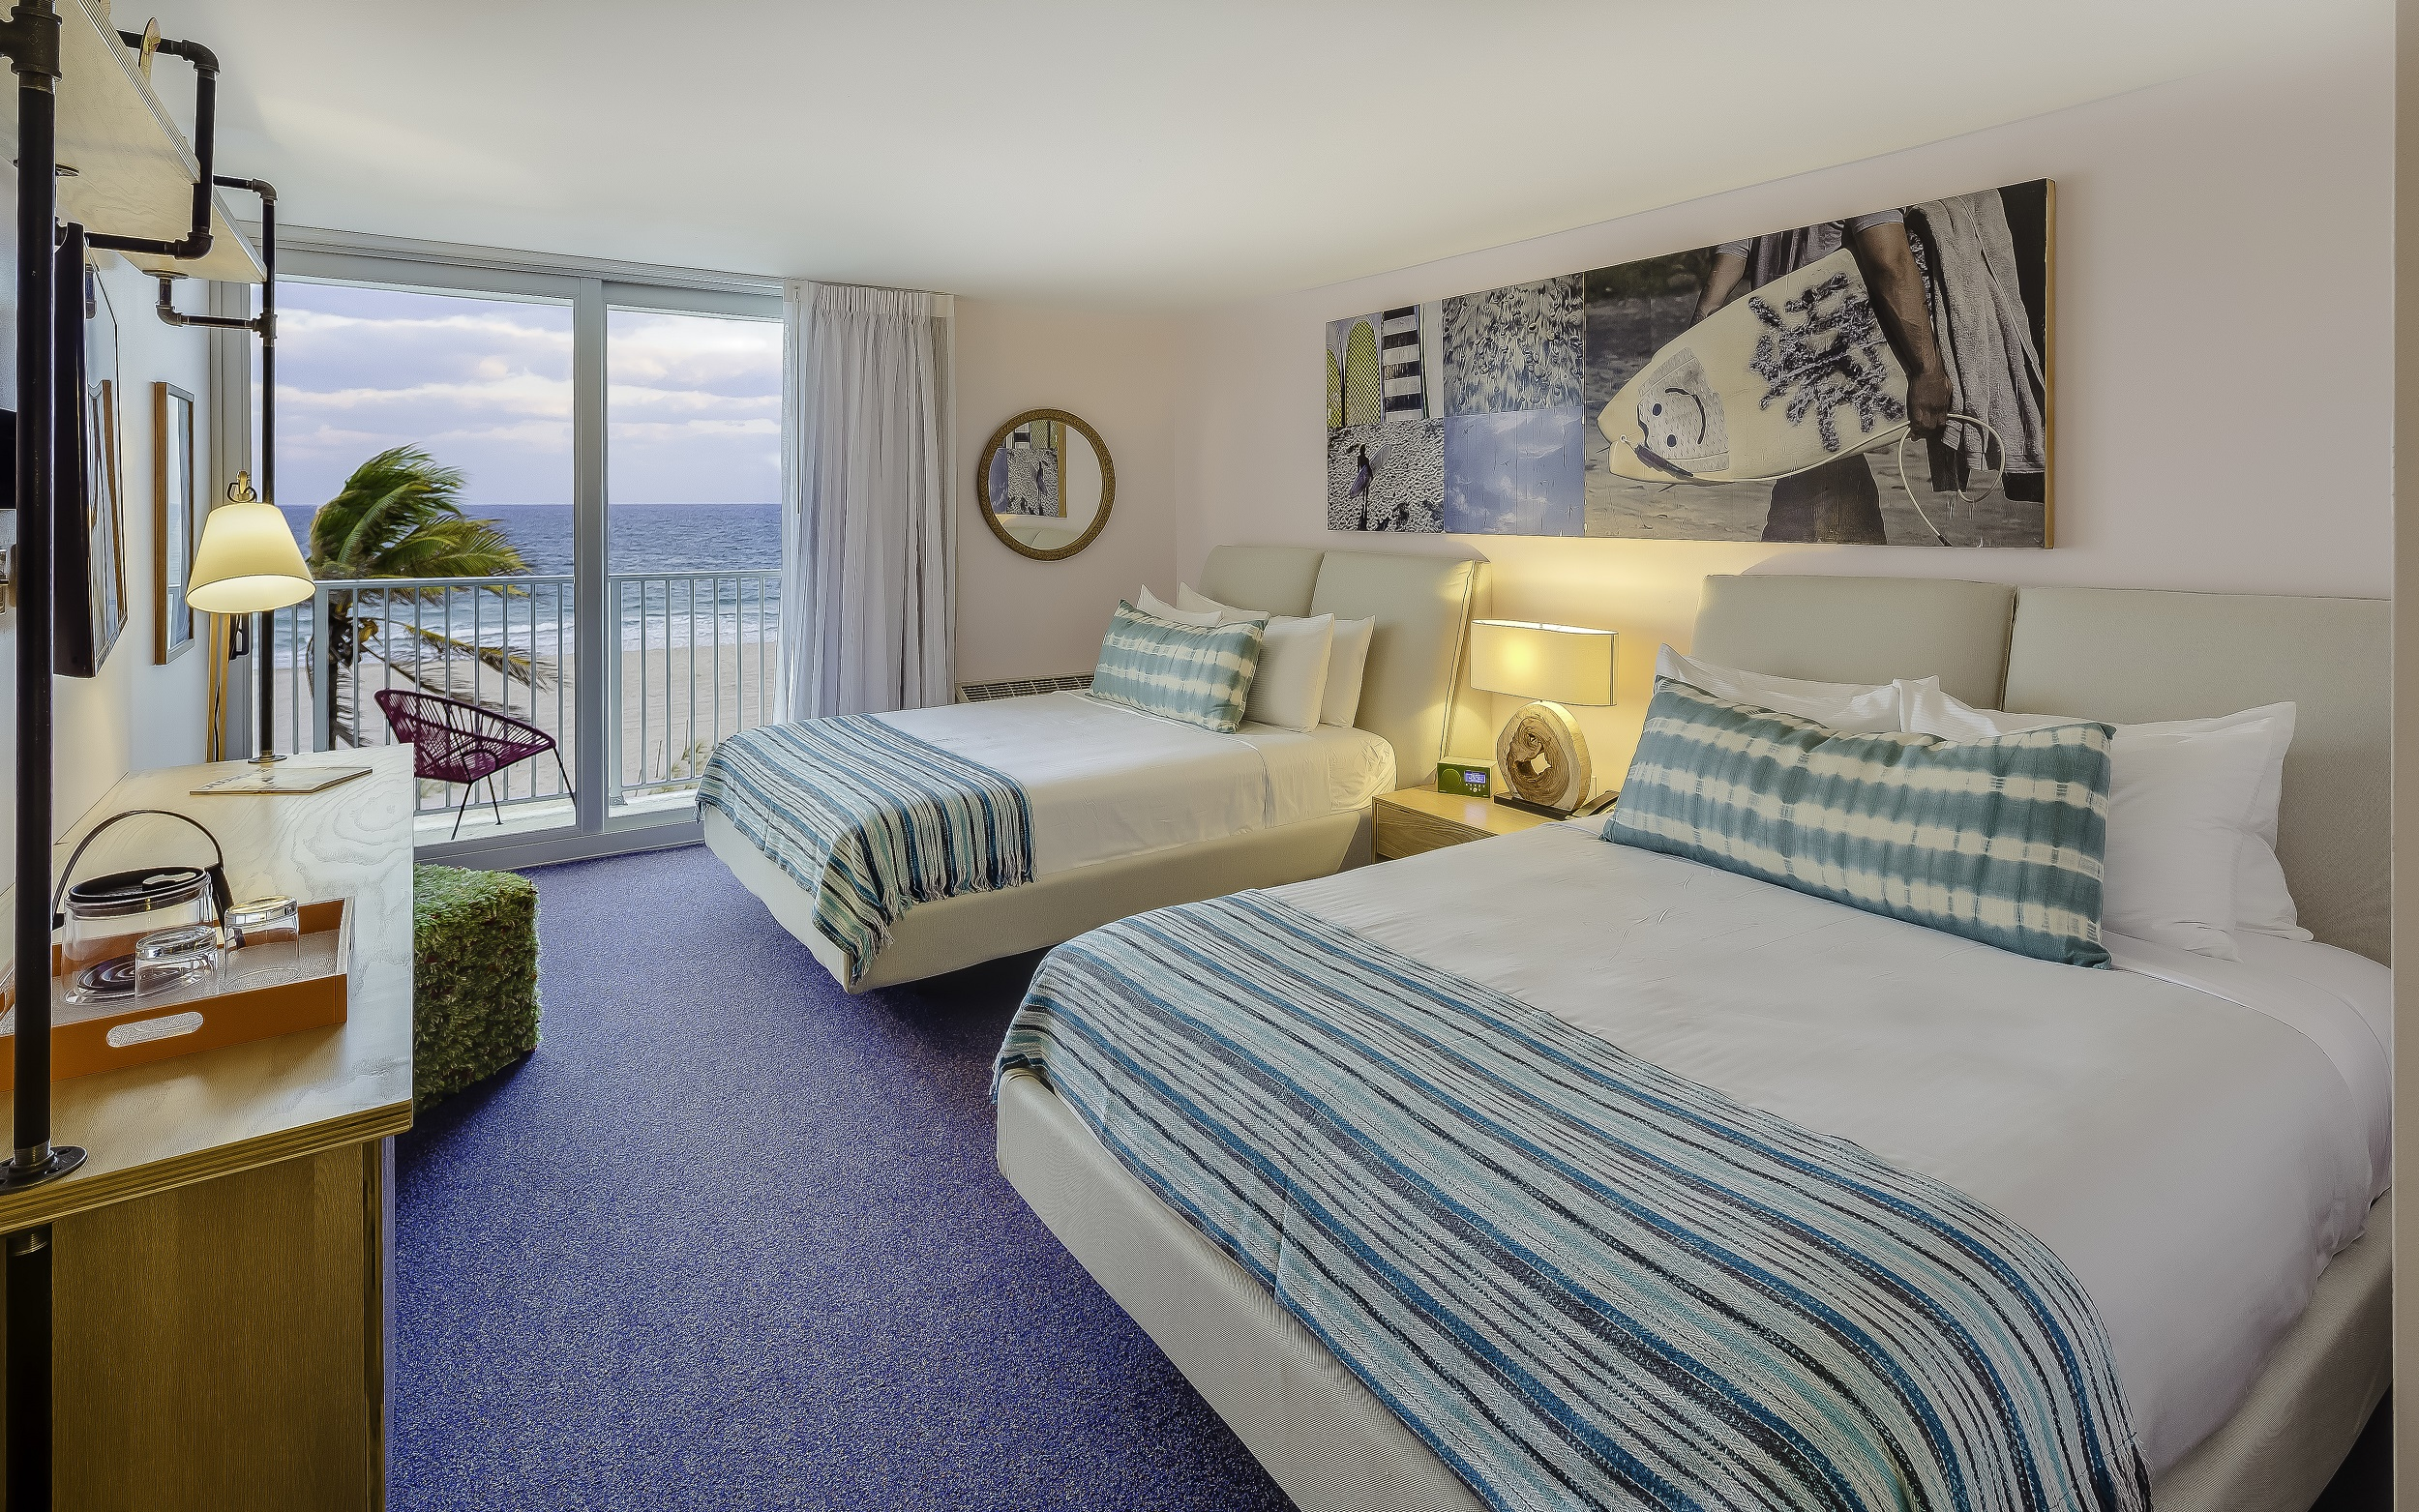 A new hotel room in Fort Lauderdale with a beachy vibe and aquatic interior